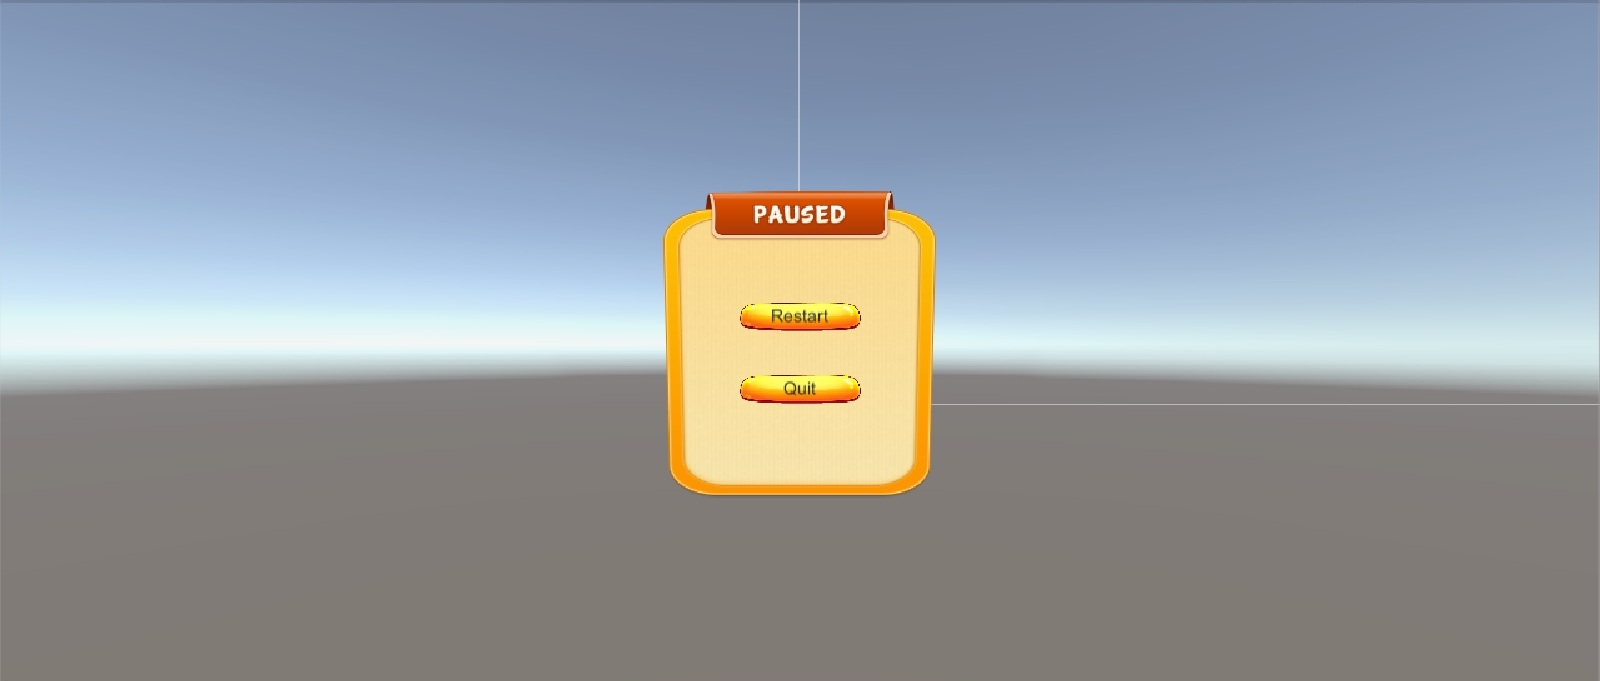 Simple Pause Menu in Unity by The Straight up technologies